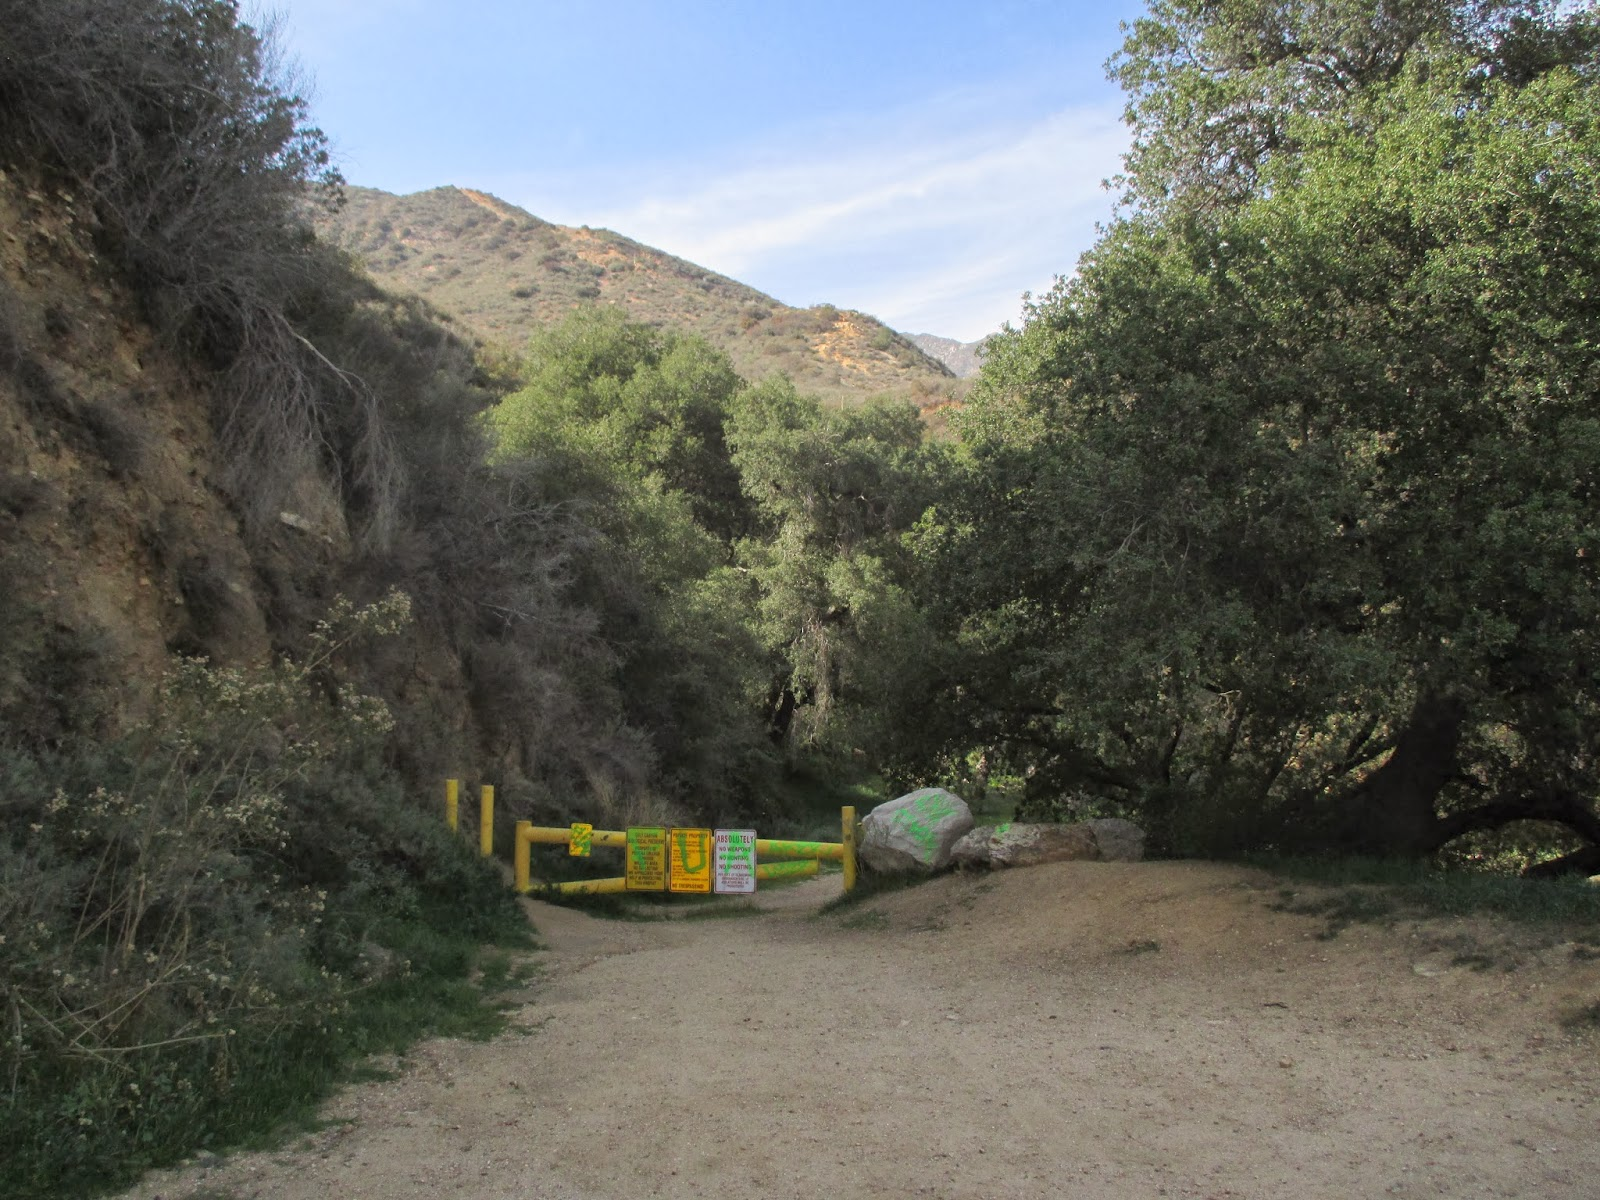 A yellow gate, which marks the start of the trail, is surrounded by trees and bushes